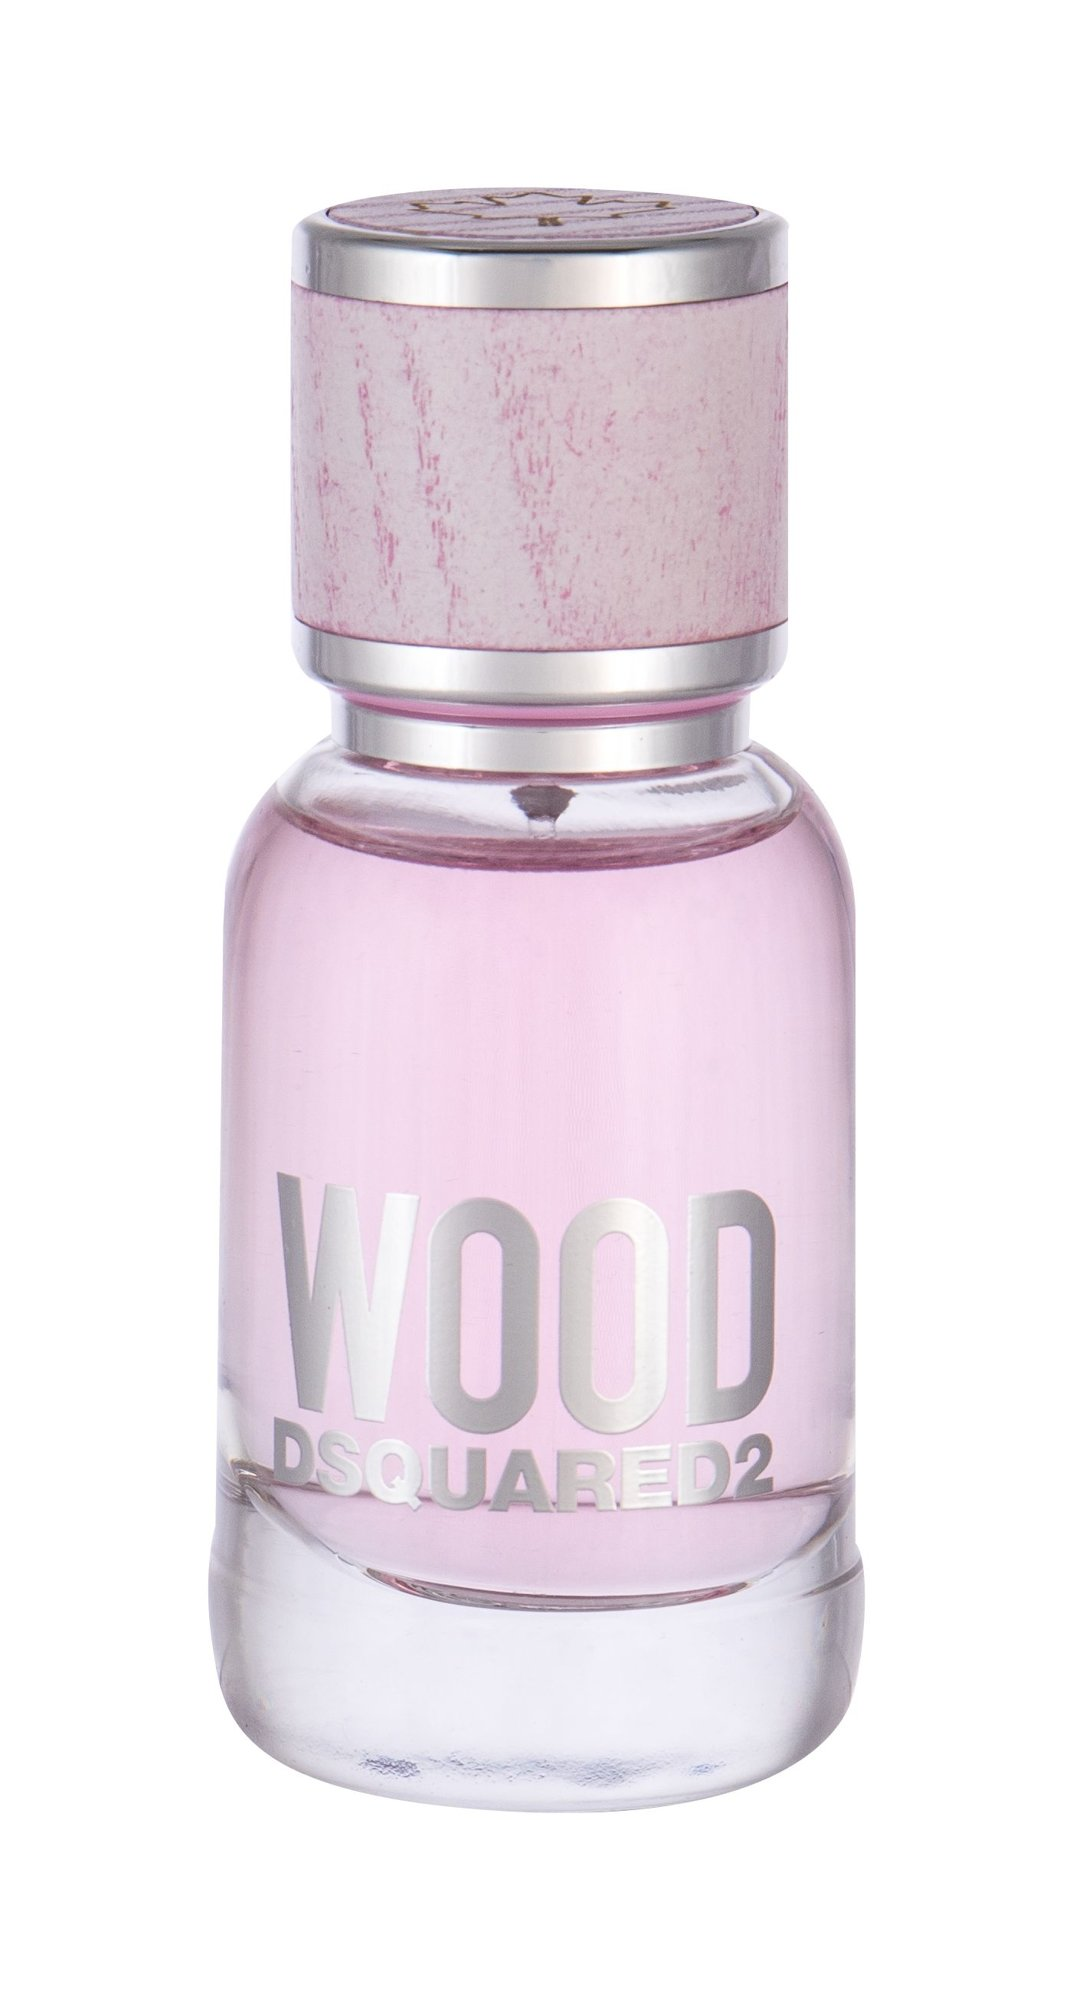 Dsquared2 Wood, Toaletná voda 30ml